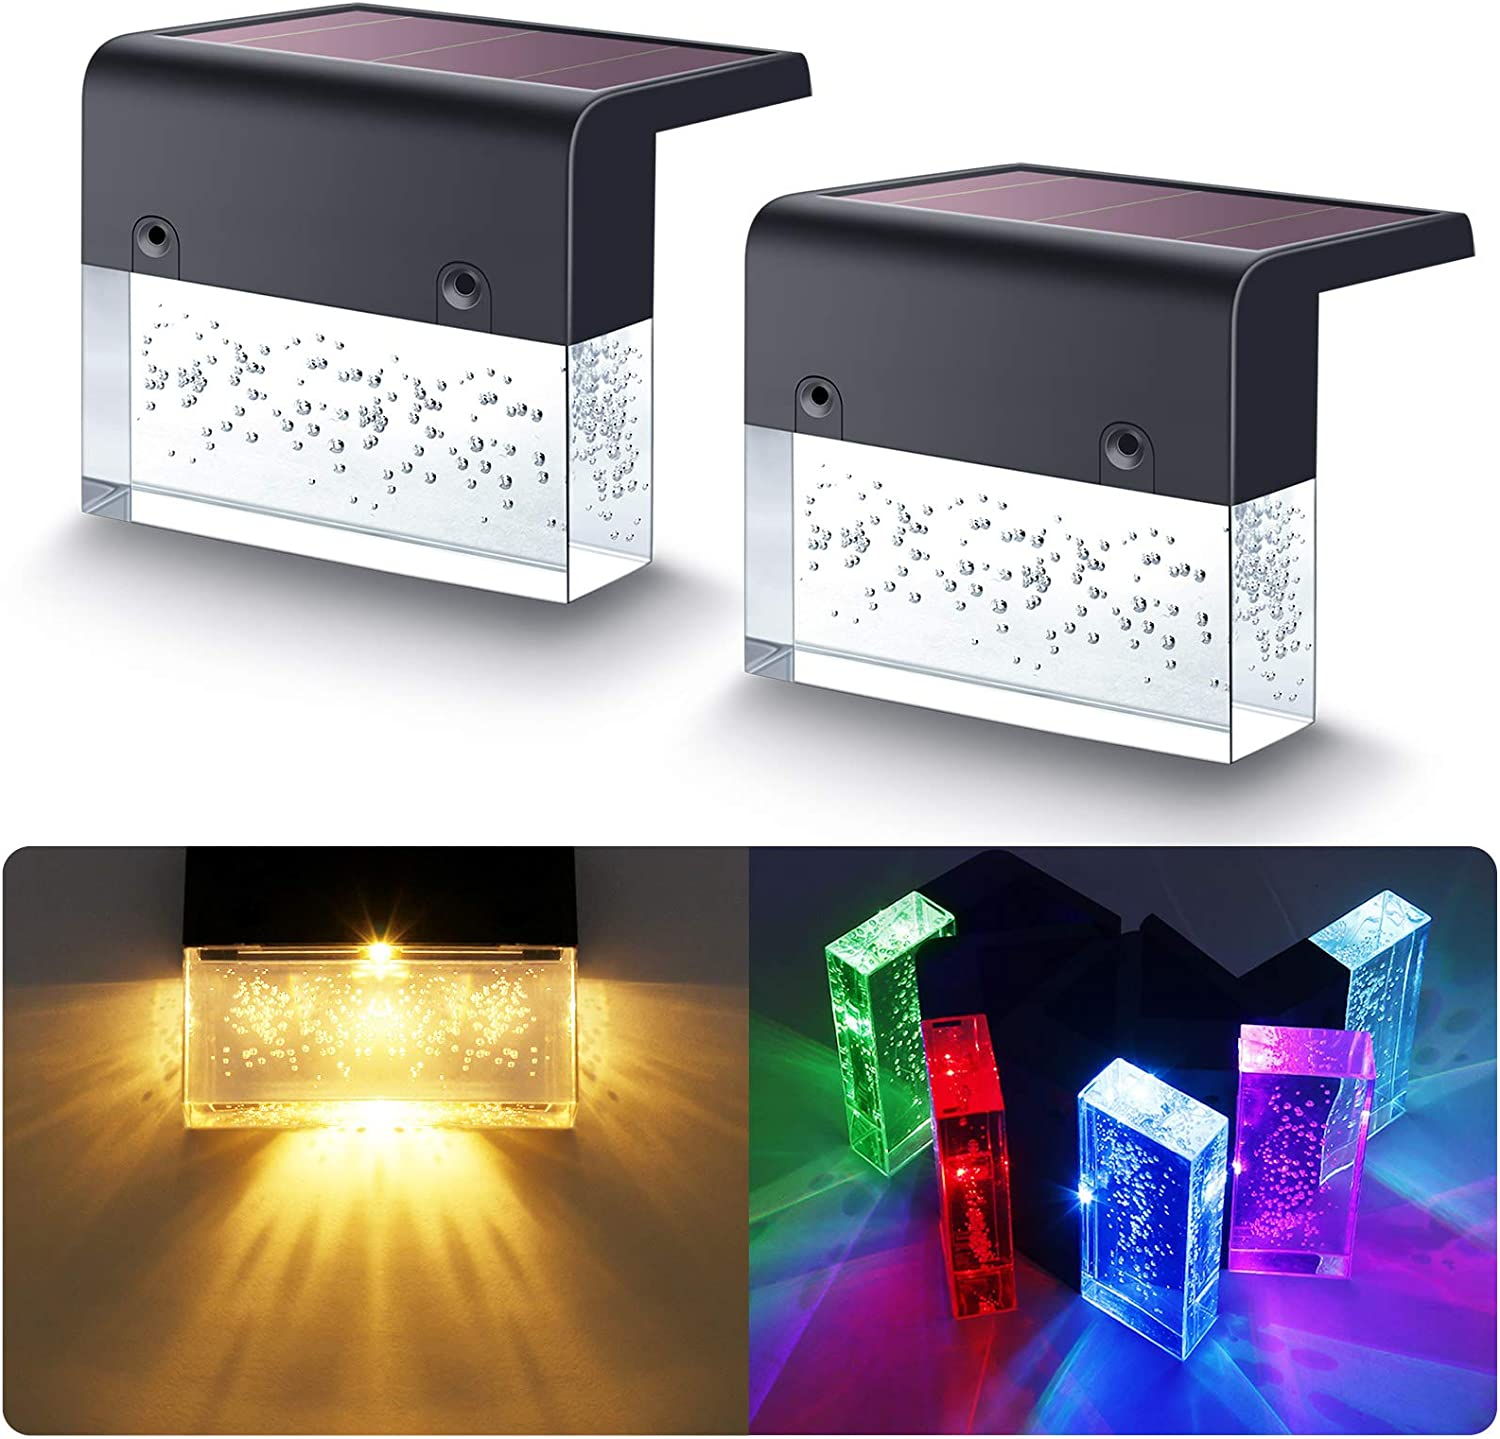 Houston Mall DenicMic Solar Max 60% OFF Deck Lights Led St for Outdoor Step